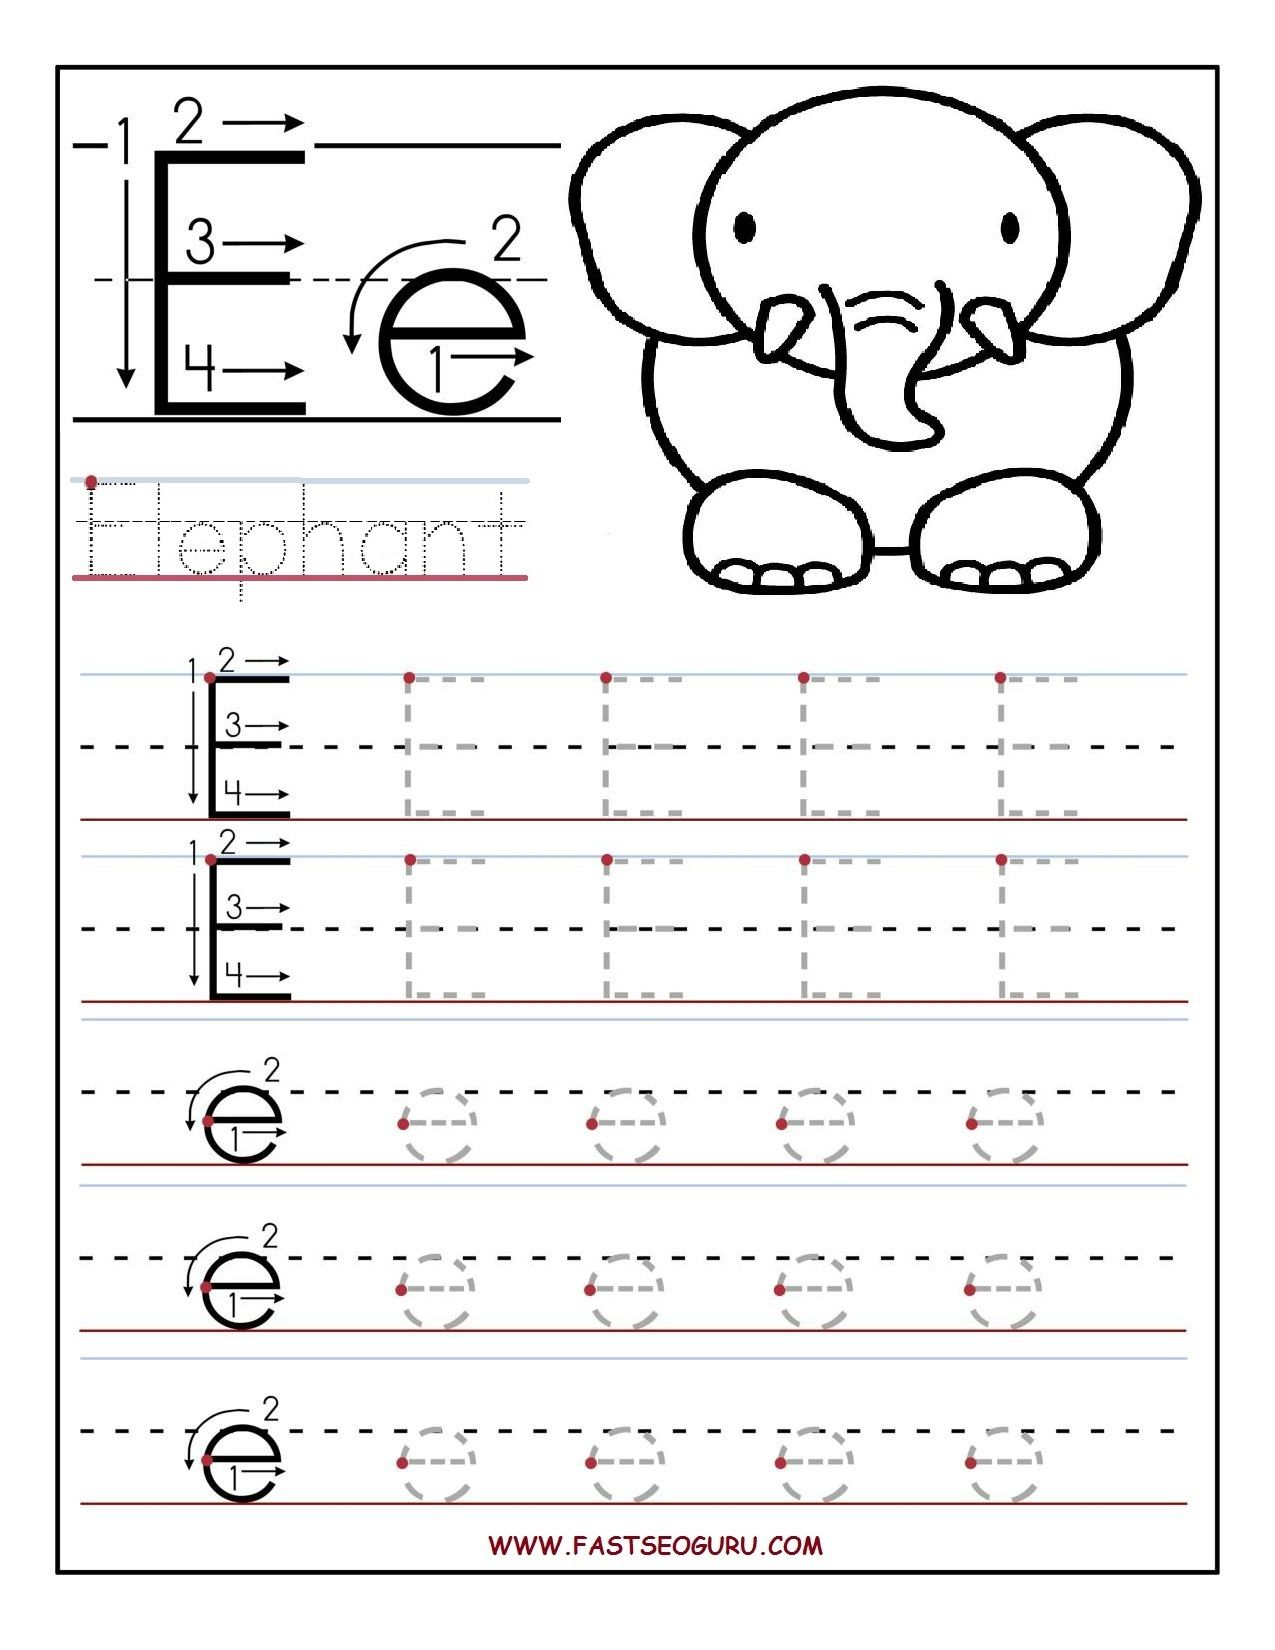 Printable Letter E Tracing Worksheets For Preschool intended for Alphabet E Tracing Worksheets